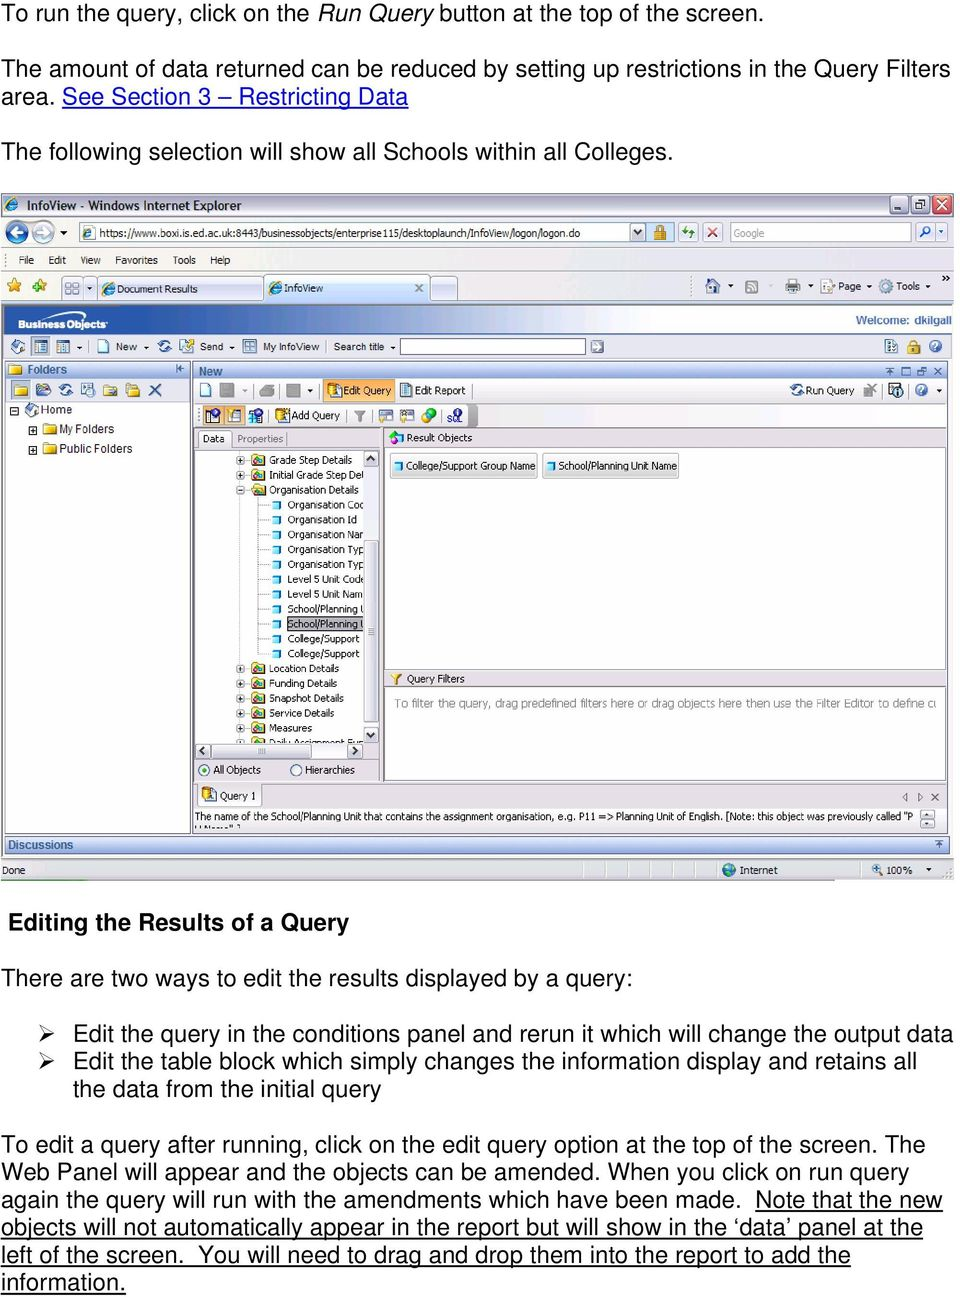 Editing the Results of a Query There are two ways to edit the results displayed by a query: Edit the query in the conditions panel and rerun it which will change the output data Edit the table block